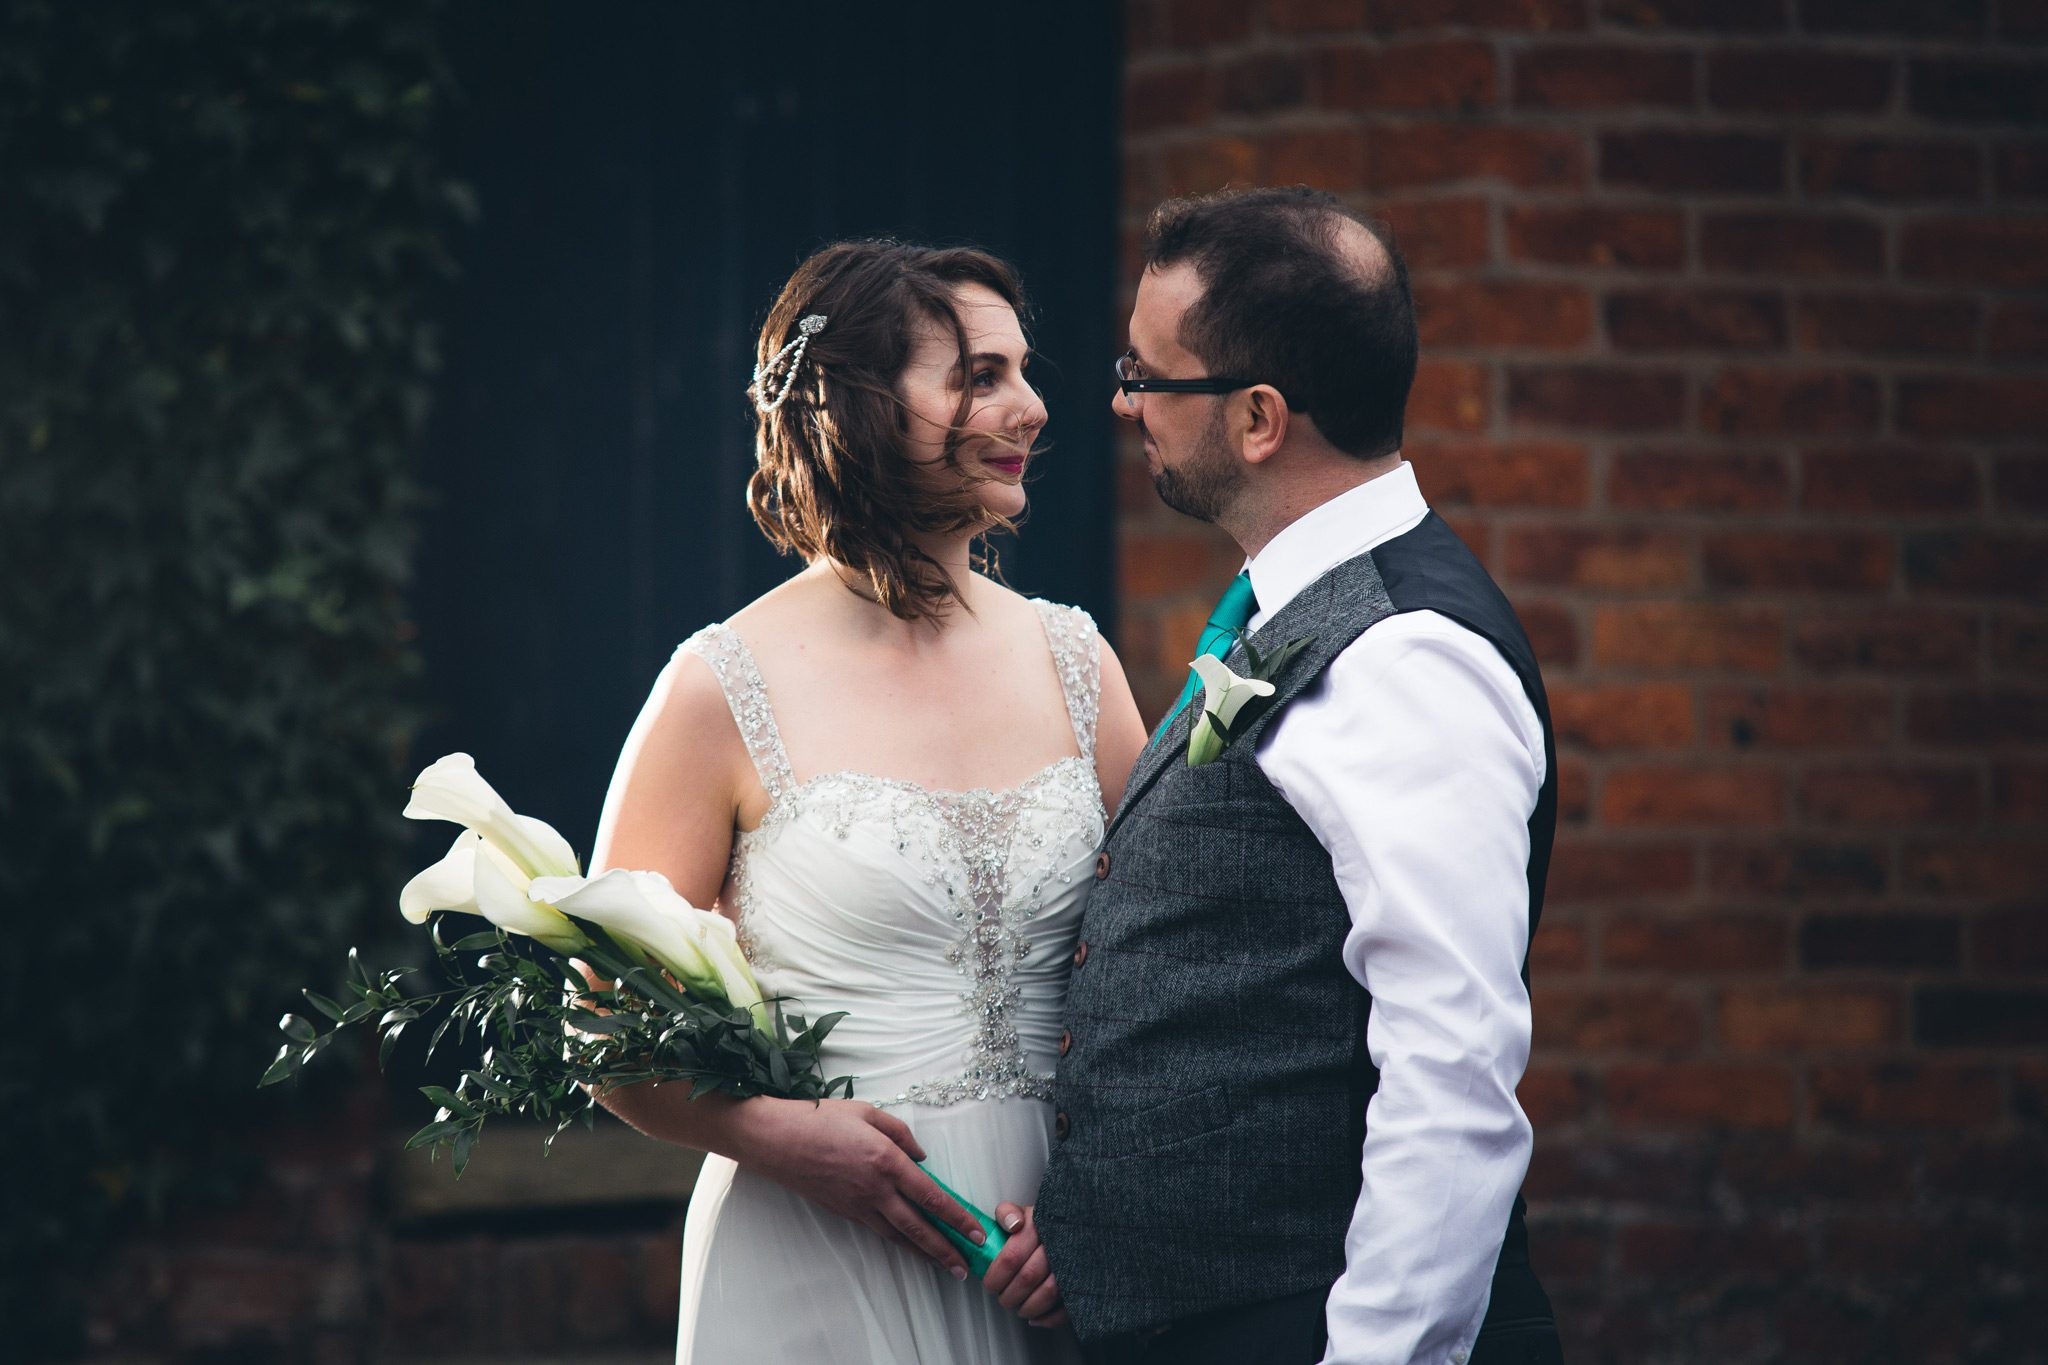 Manchester wedding with bride and groom at Castlefield Rooms